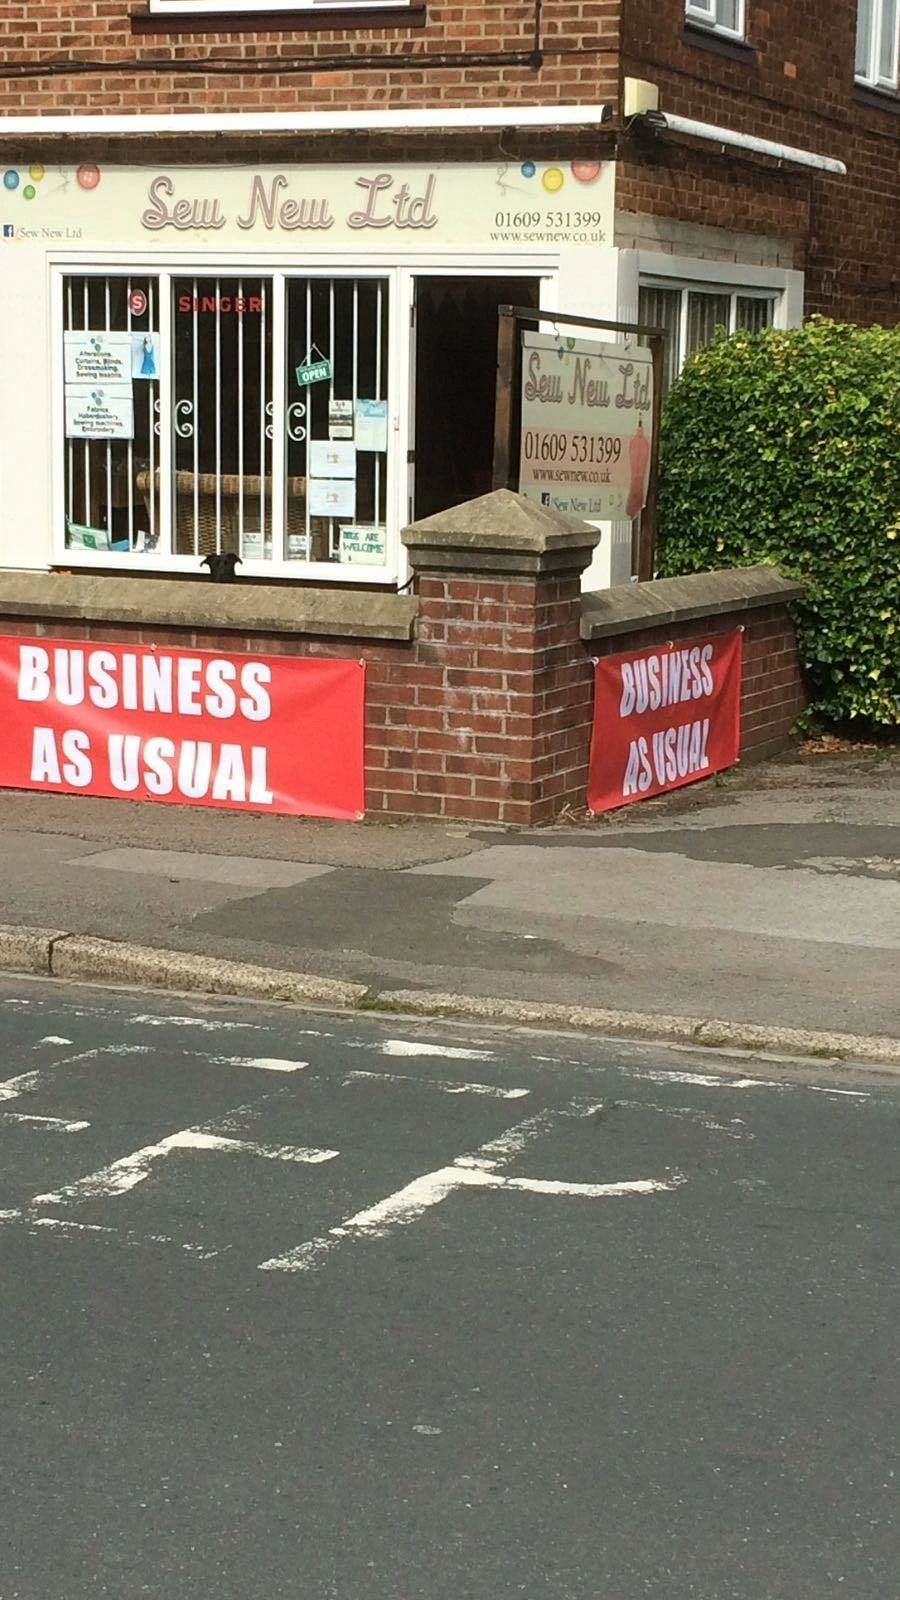 Sew New Ltd- Business as usual!